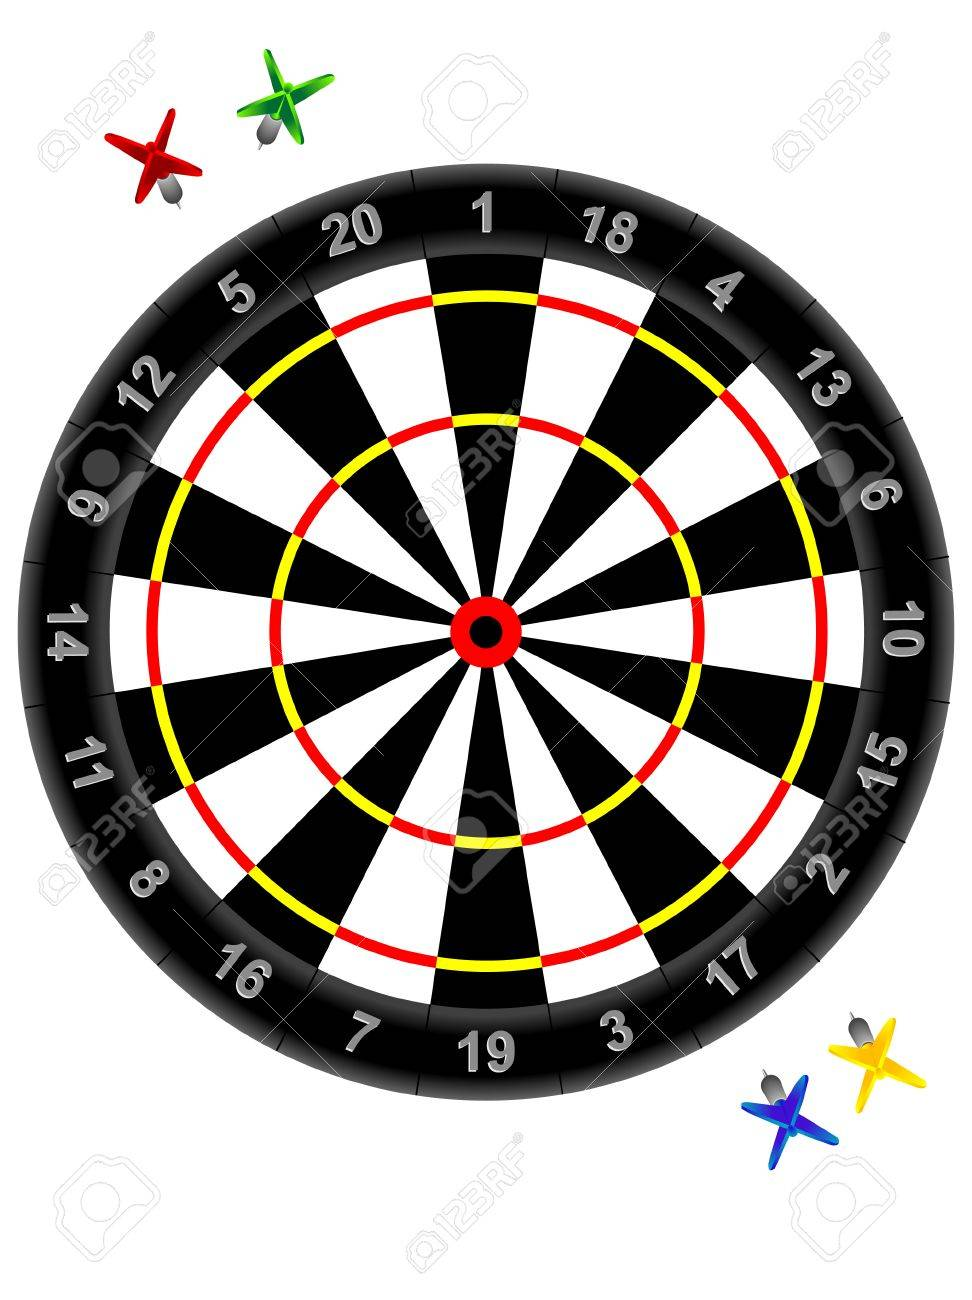 Darts And Target For Game a